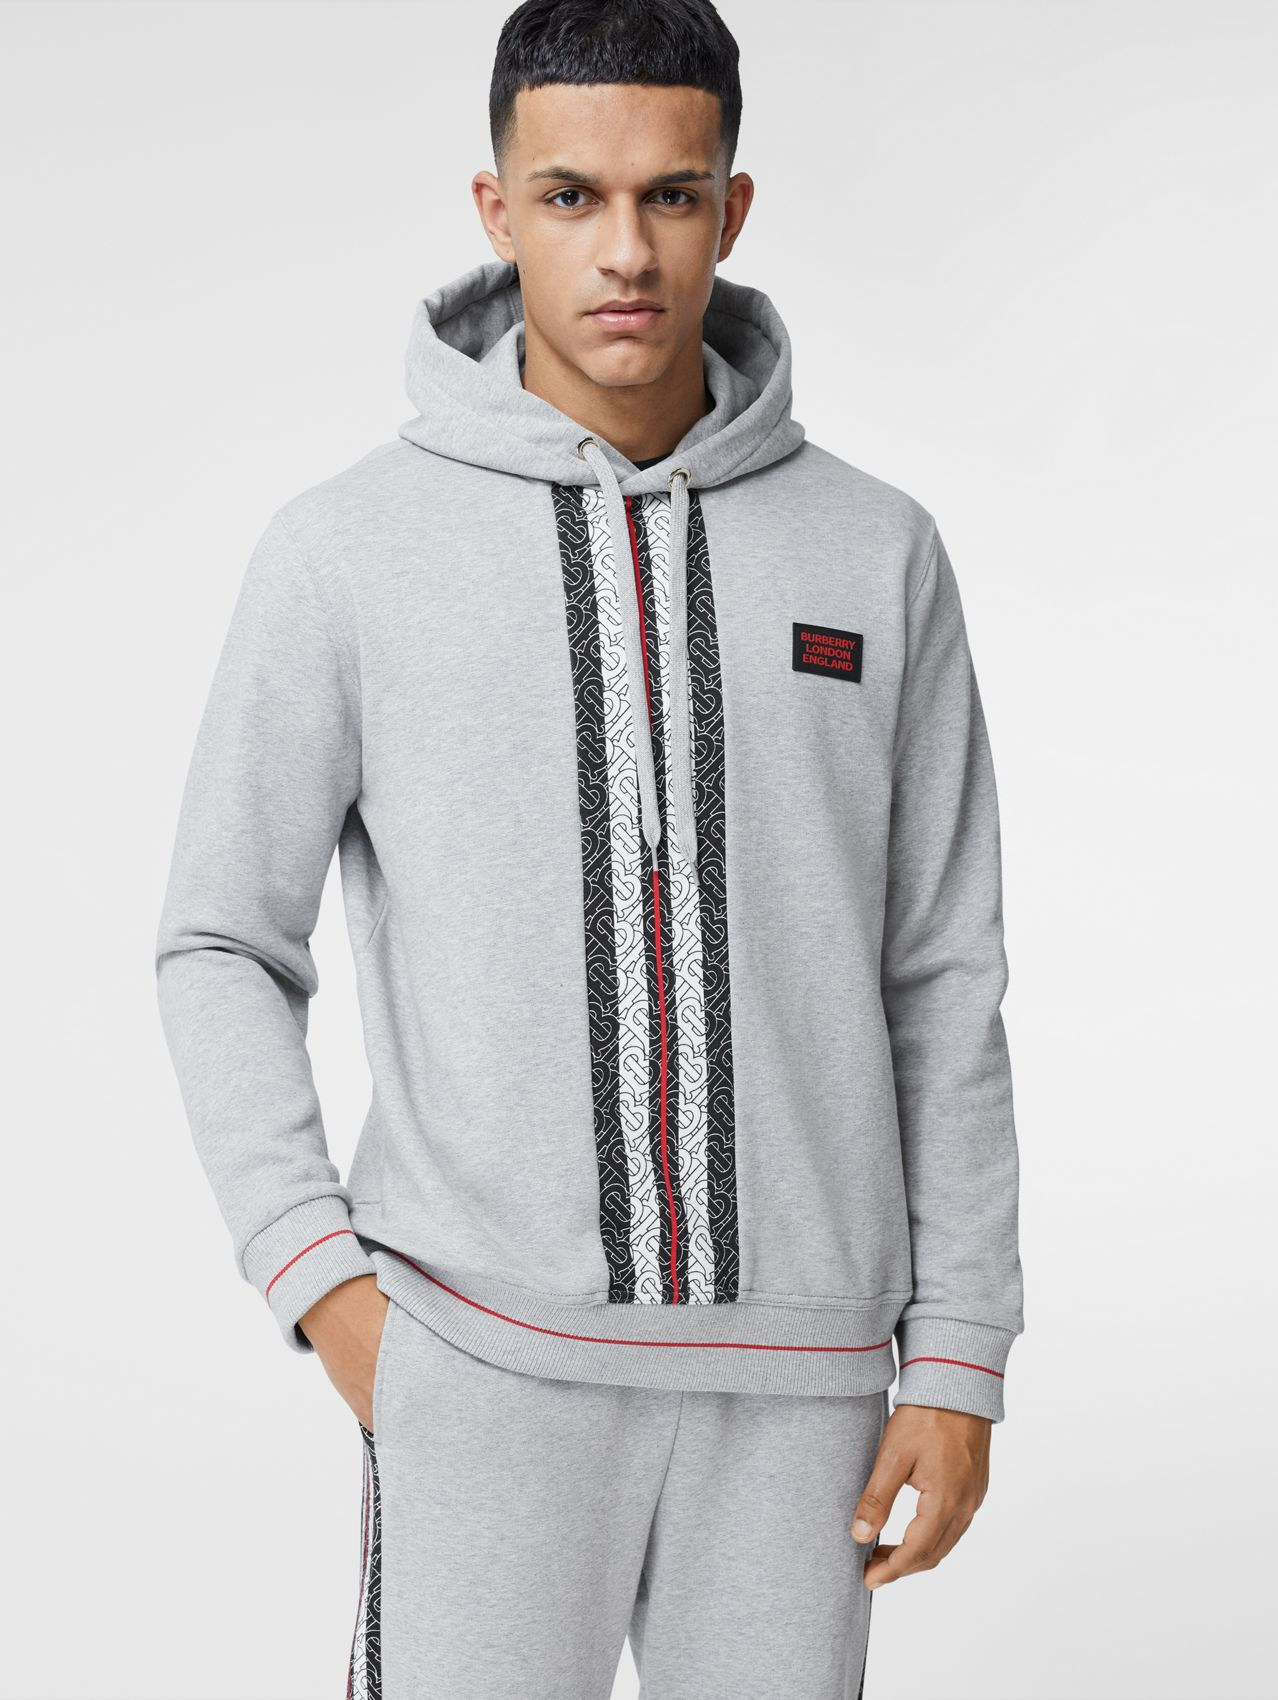 Monogram Stripe Panel Cotton Hoodie in Pale Grey Melange